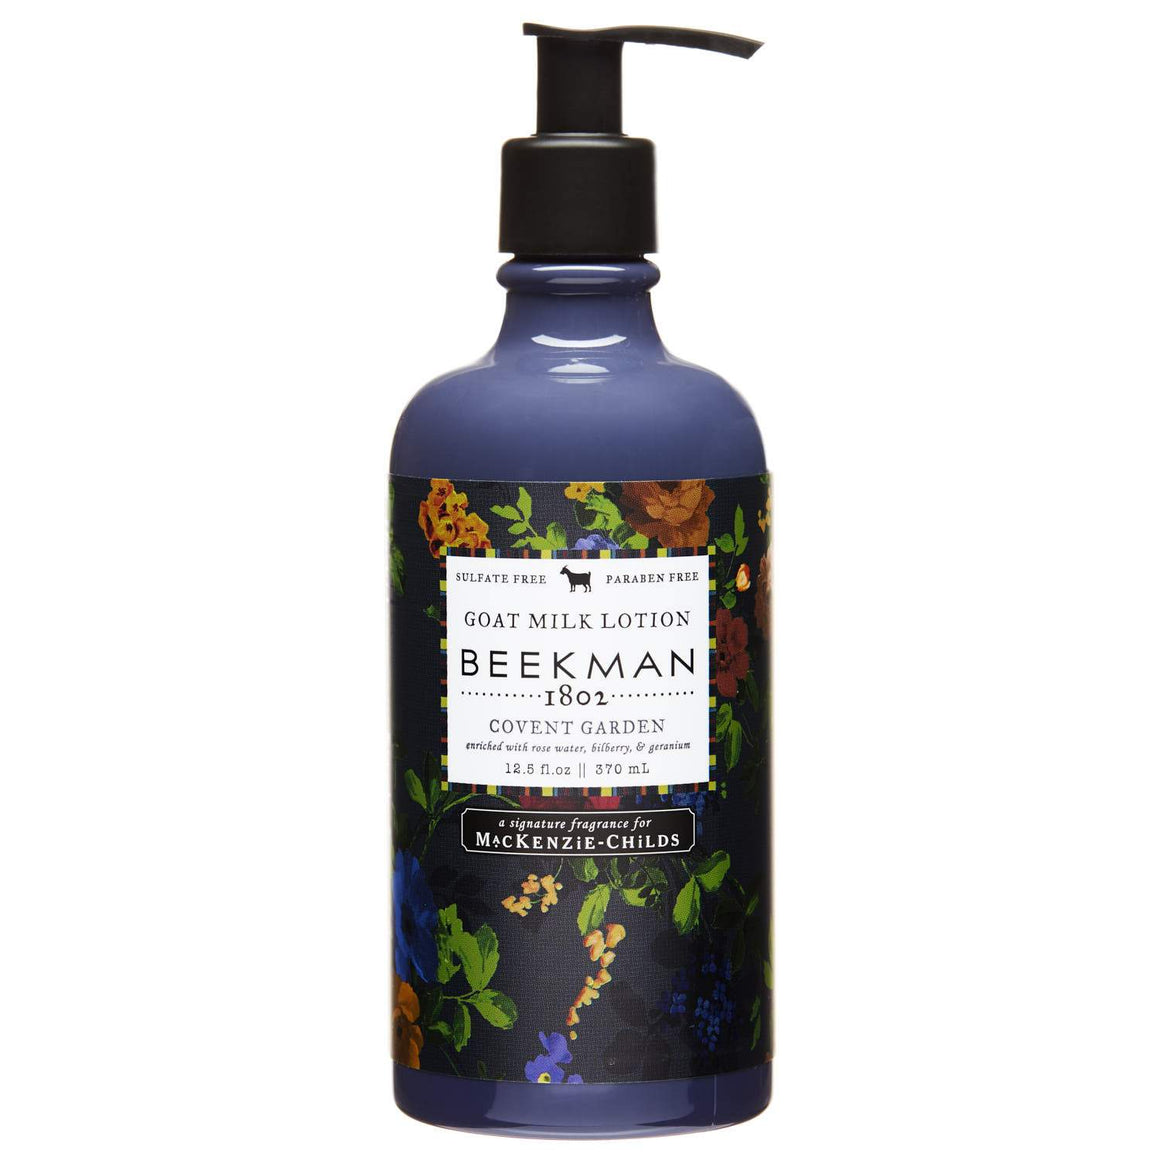 MacKenzie-Childs Covent Garden Lotion